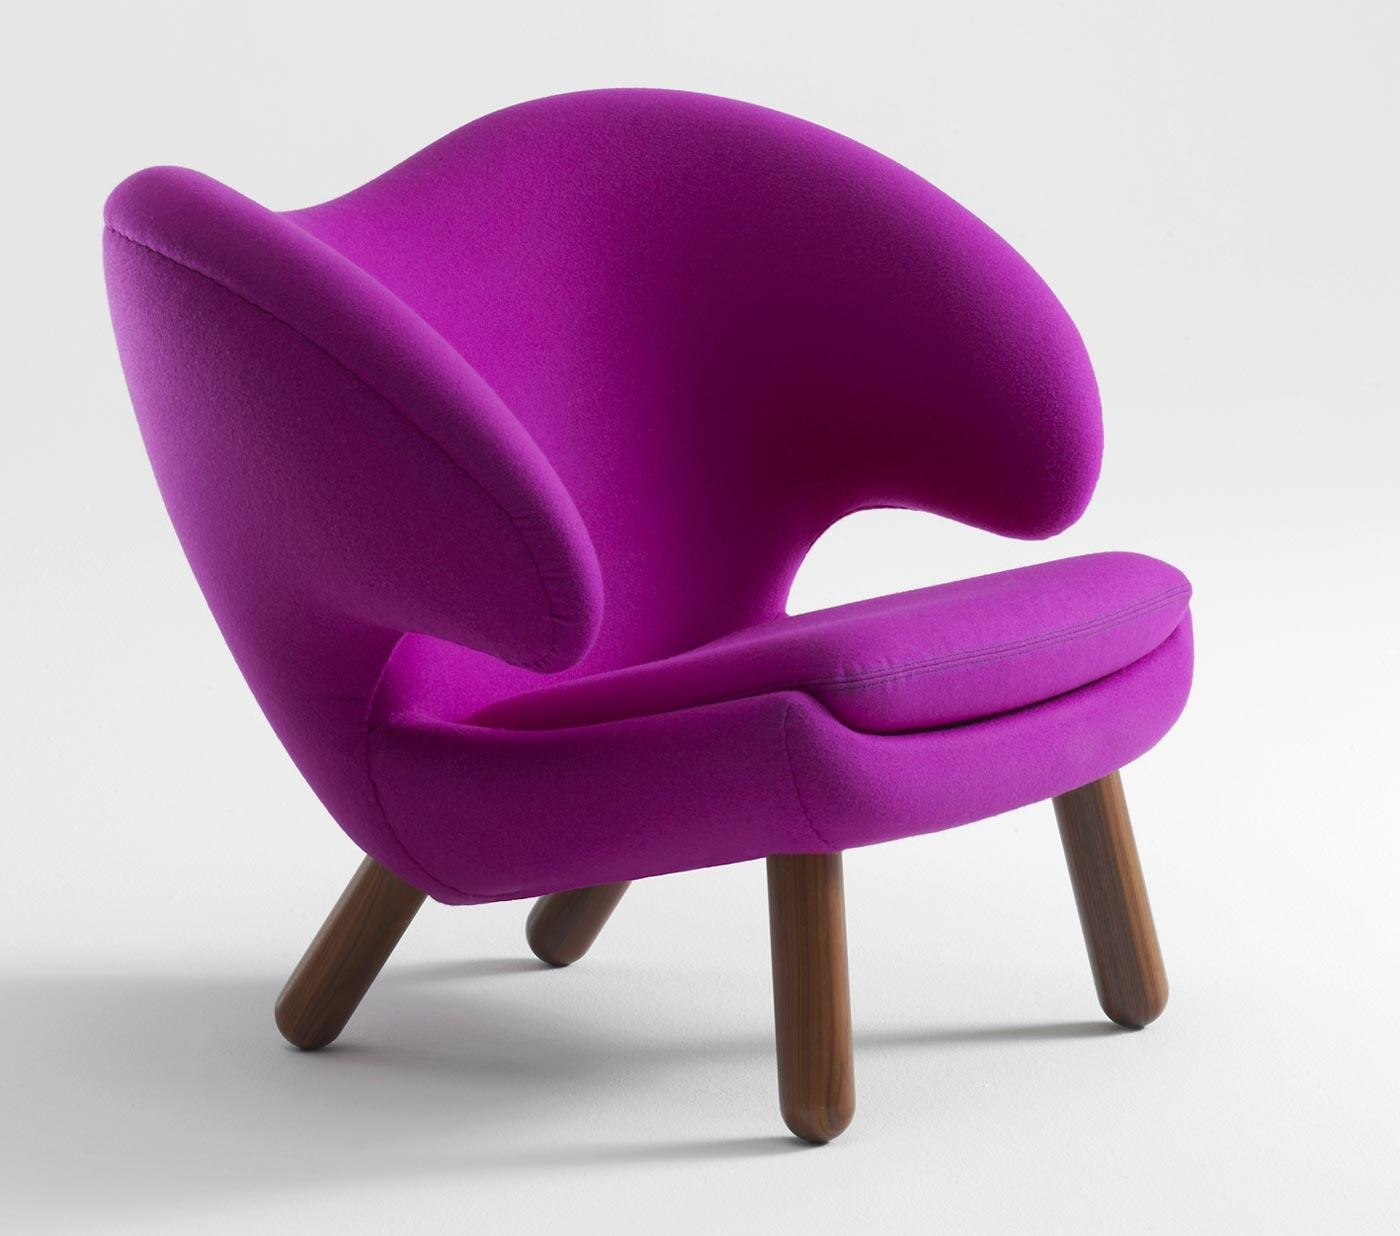 Chair Modern Design – Modern House Regarding Contemporary Sofa Chairs (Image 6 of 20)